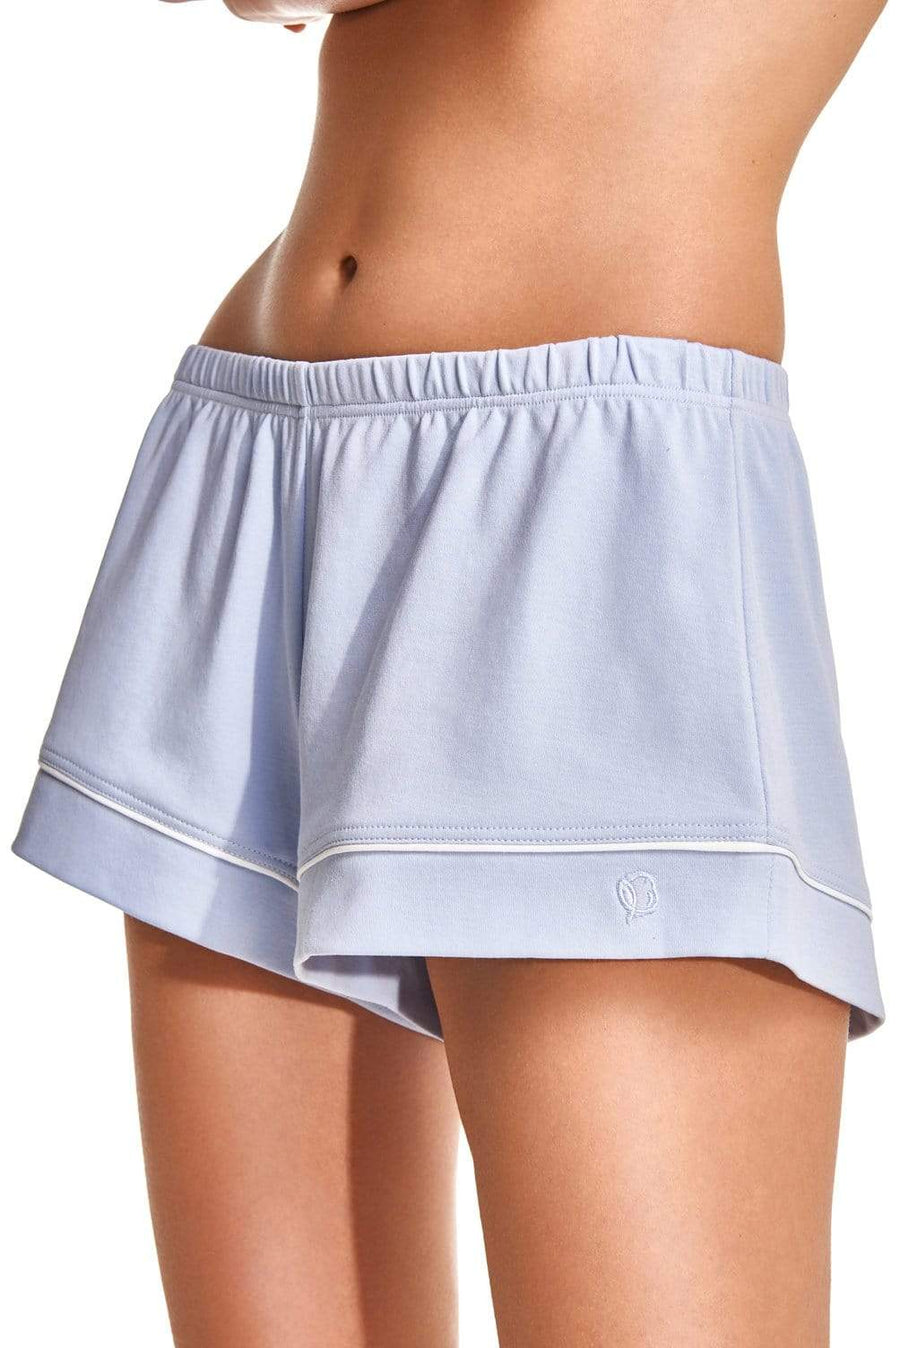 Slow Nature® Essentials Sleep & Loungewear SHORTS. Organic Cotton. sustainable fashion ethical fashion